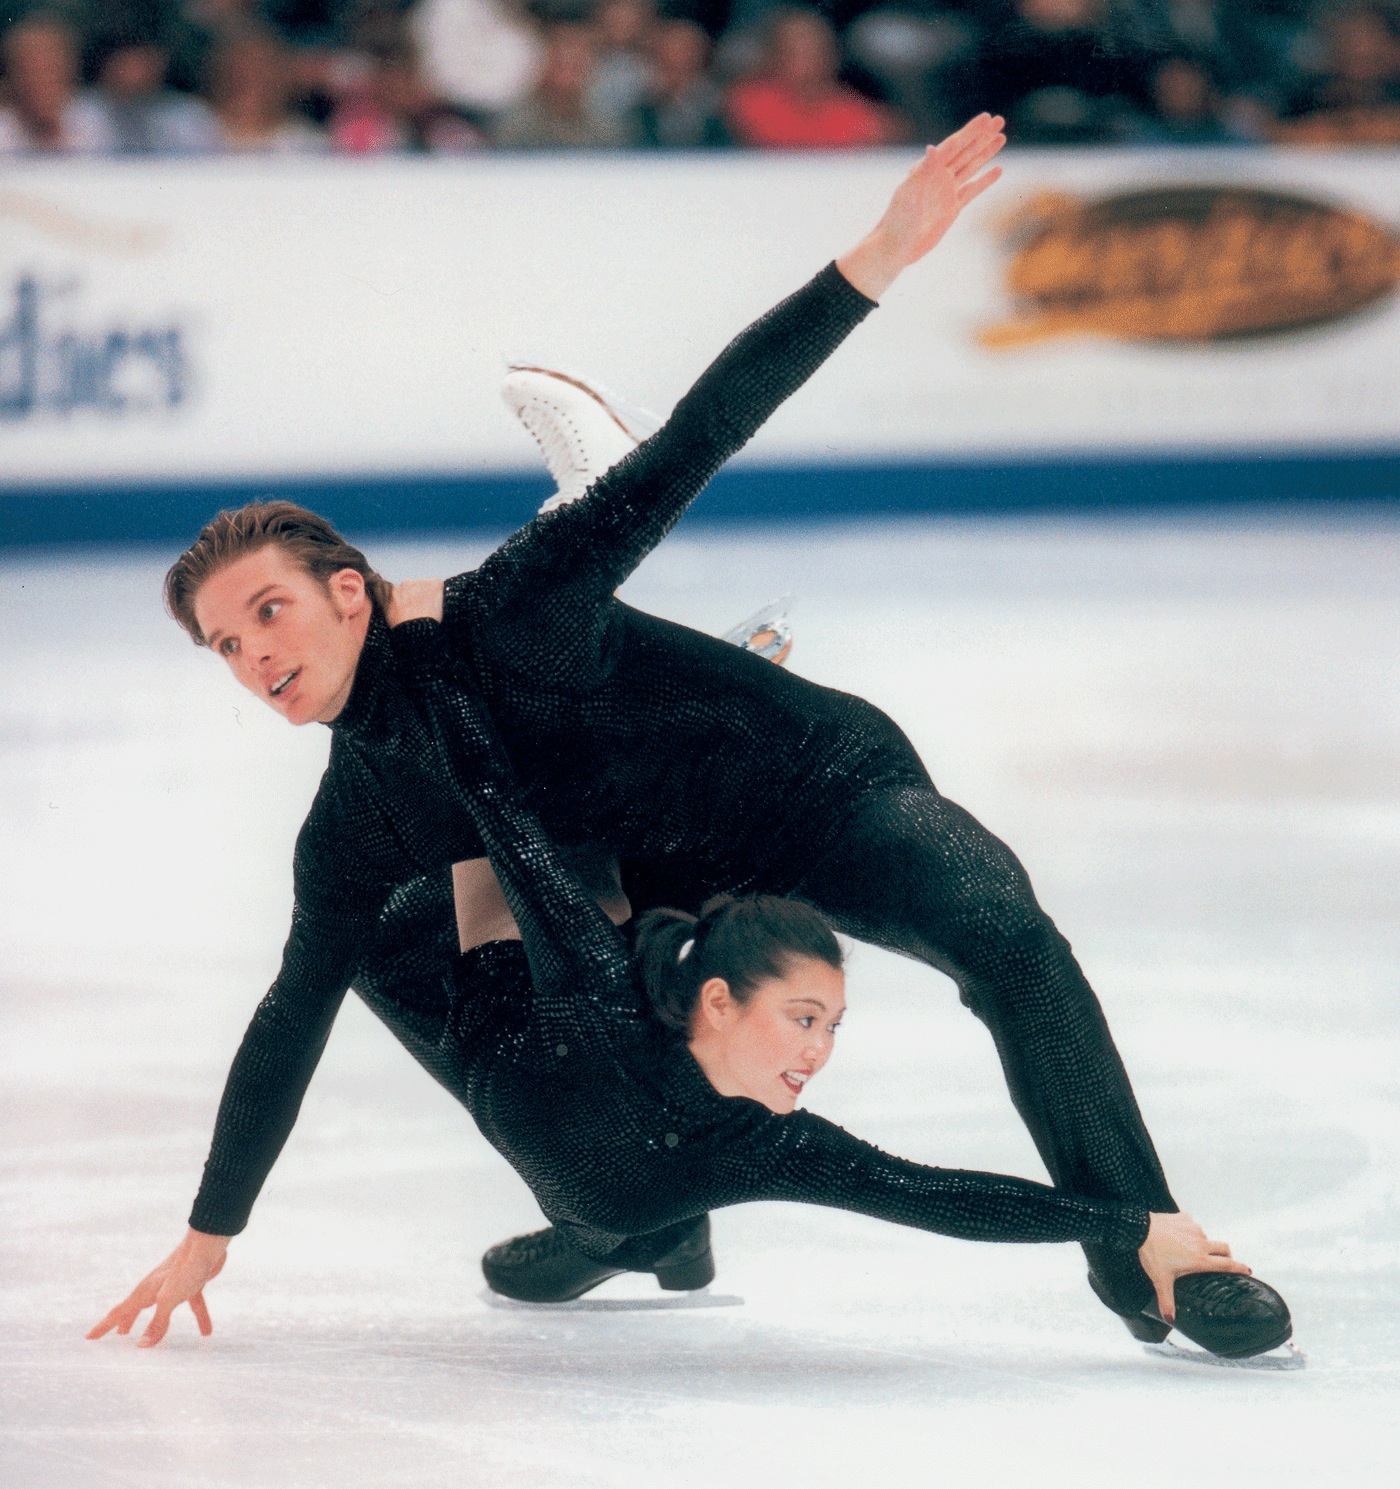 Kyoko Ina and John Zimmerman  won bronze at Worlds in 2002. Before teaming with Zimmerman, Ina skated with Jason Dungjen, winning US Nationals in 1997 and 1998.